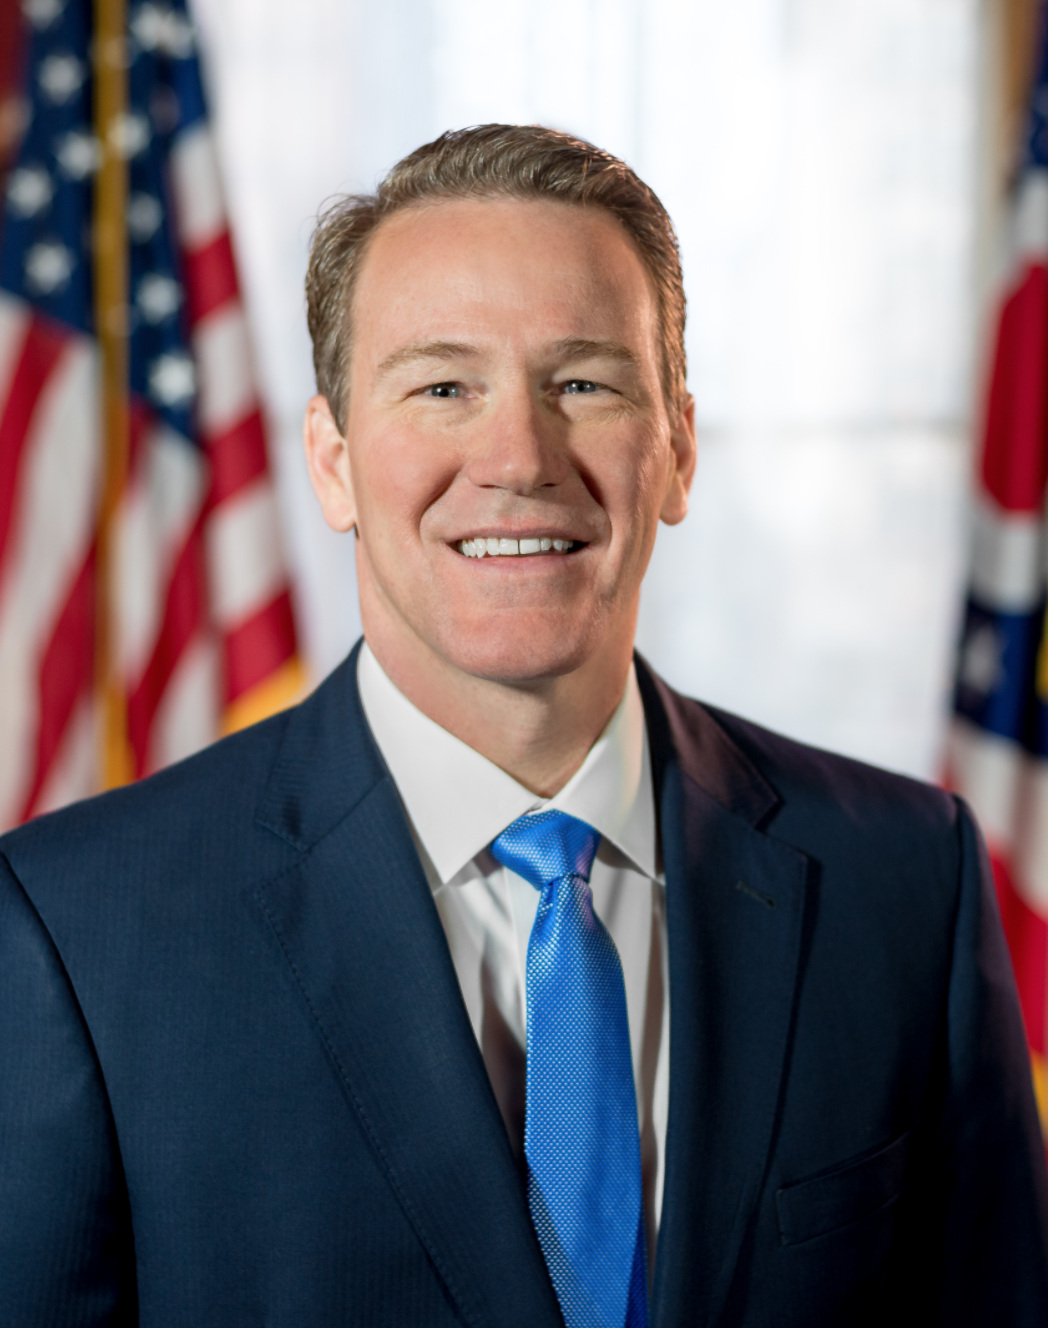 """Lt. Gov. John Husted said Ohio is working to reduce unemployment fraud, describing it one of his """"greatest sources of frustration"""" during the pandemic."""